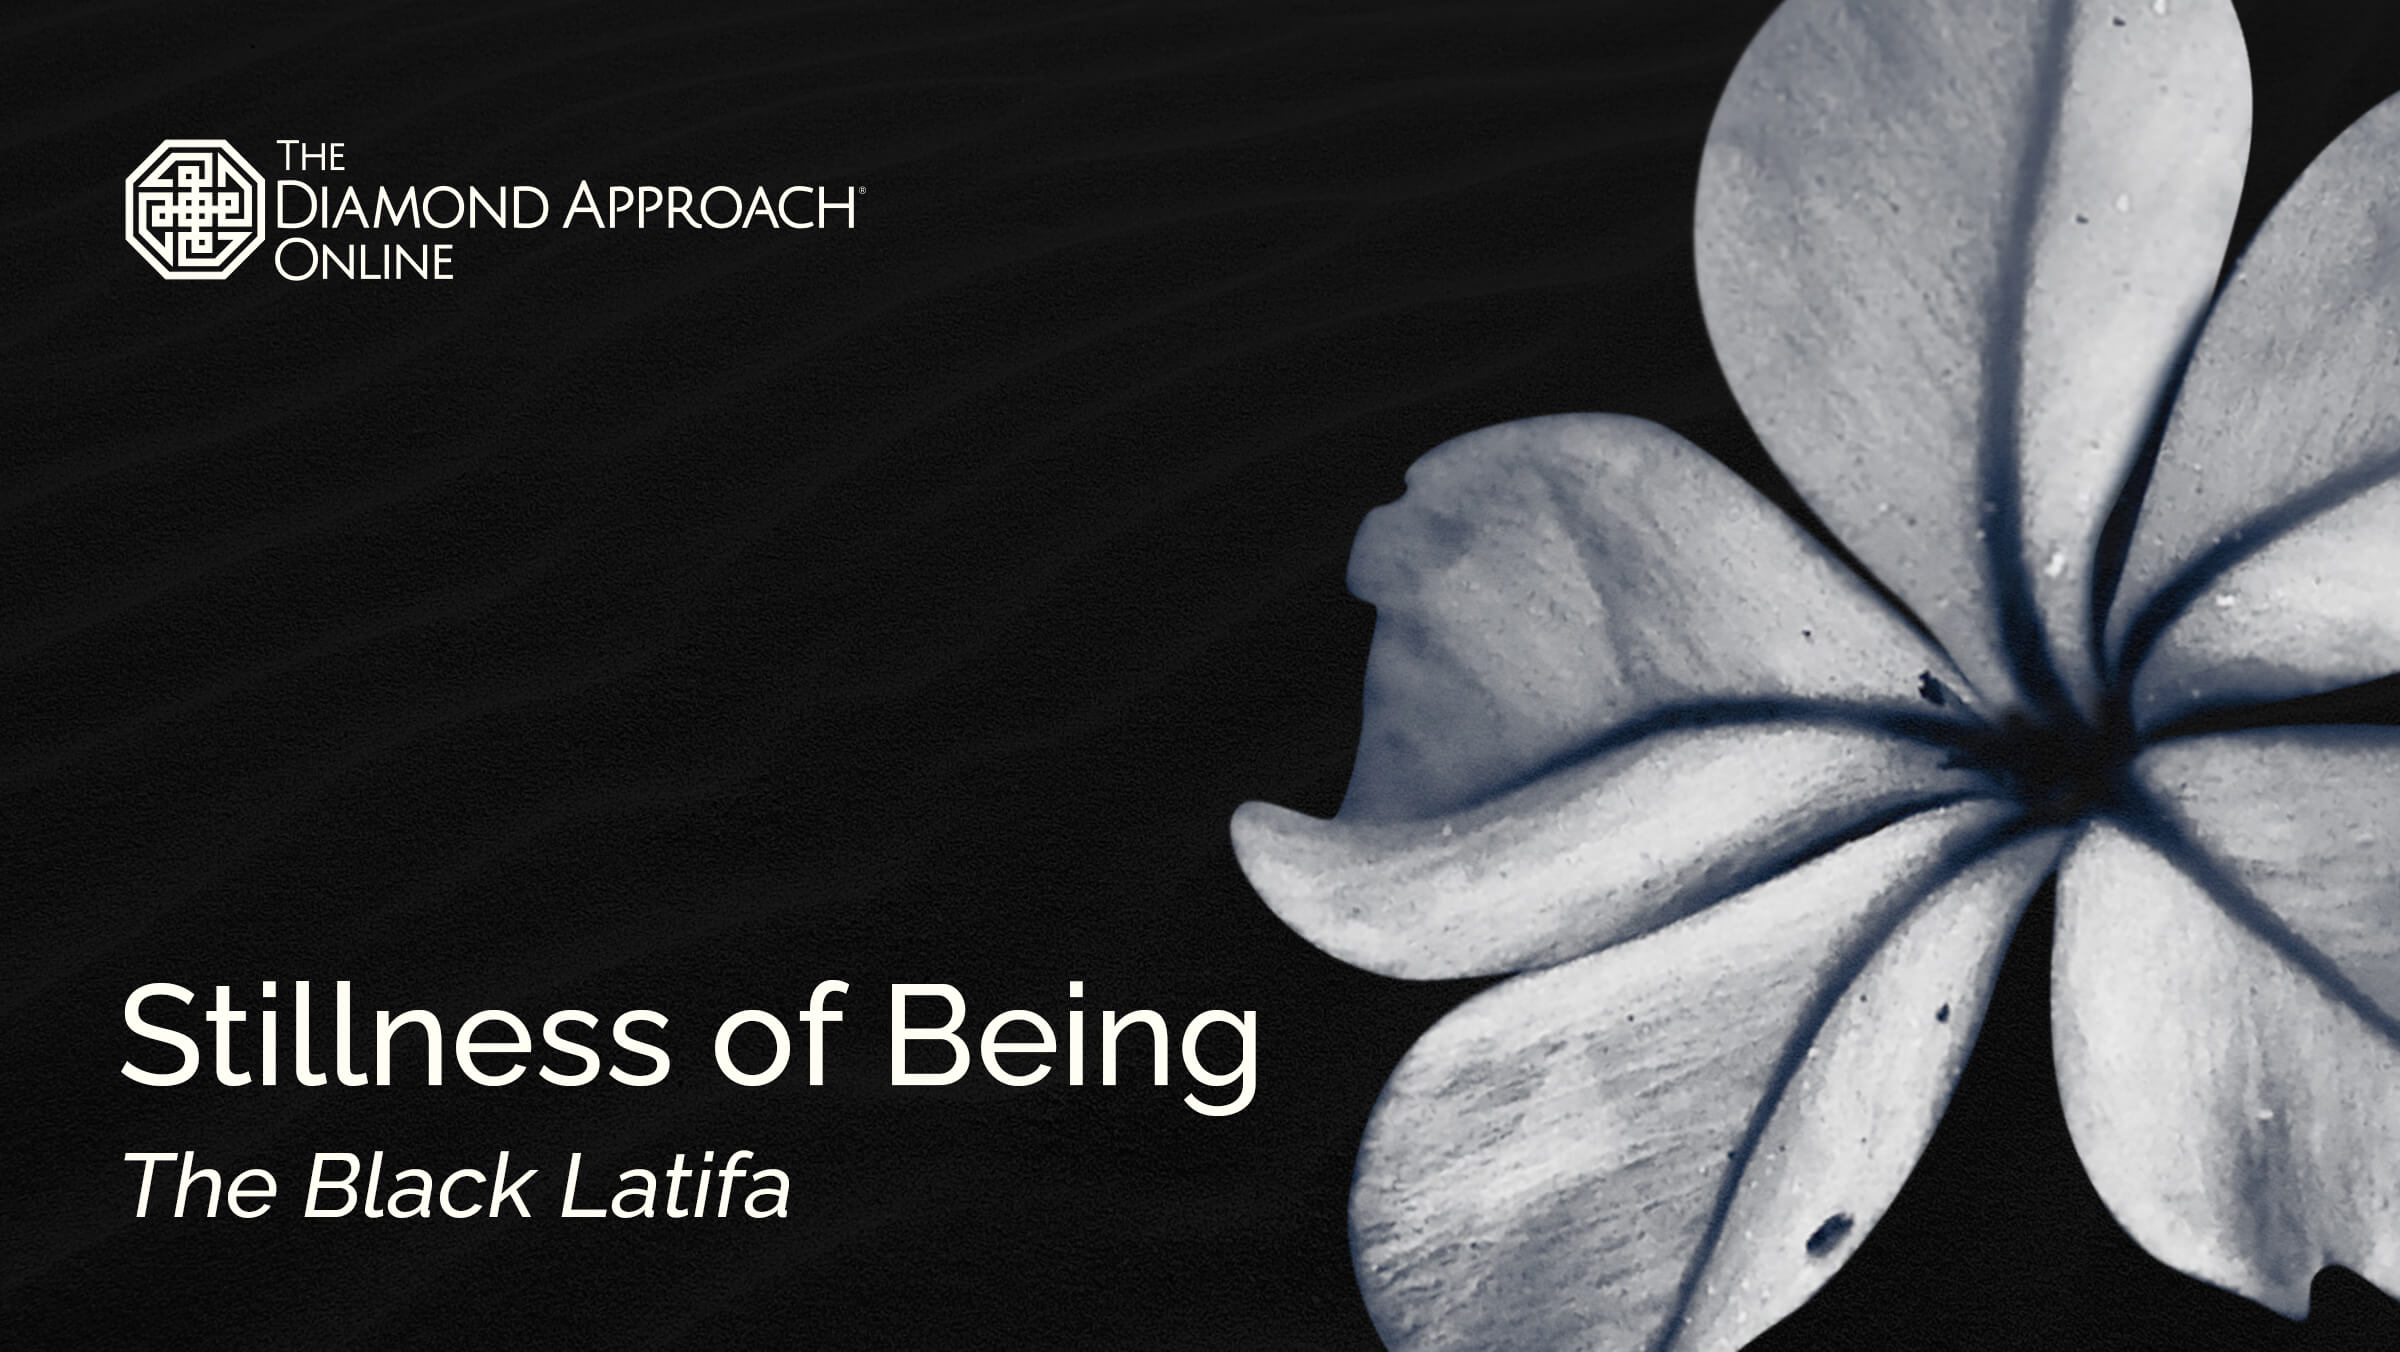 Stillness of Being: The Black Latifa